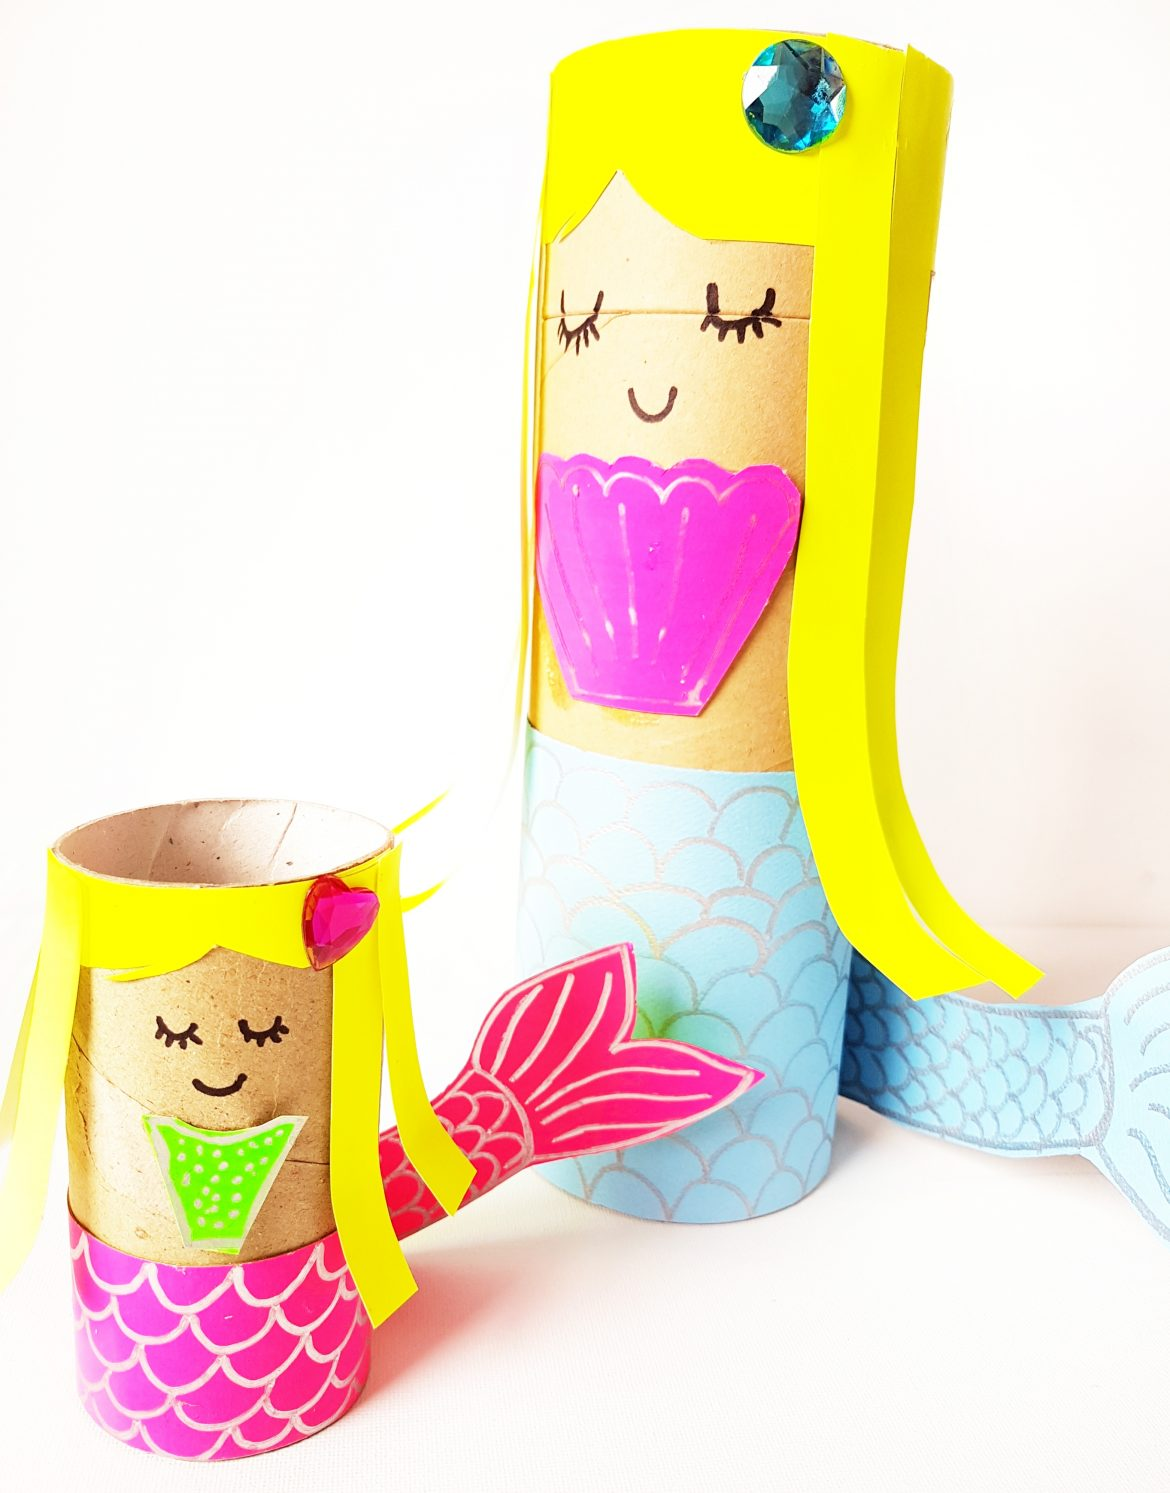 How To Make Mermaid Craft Using Paper Roll